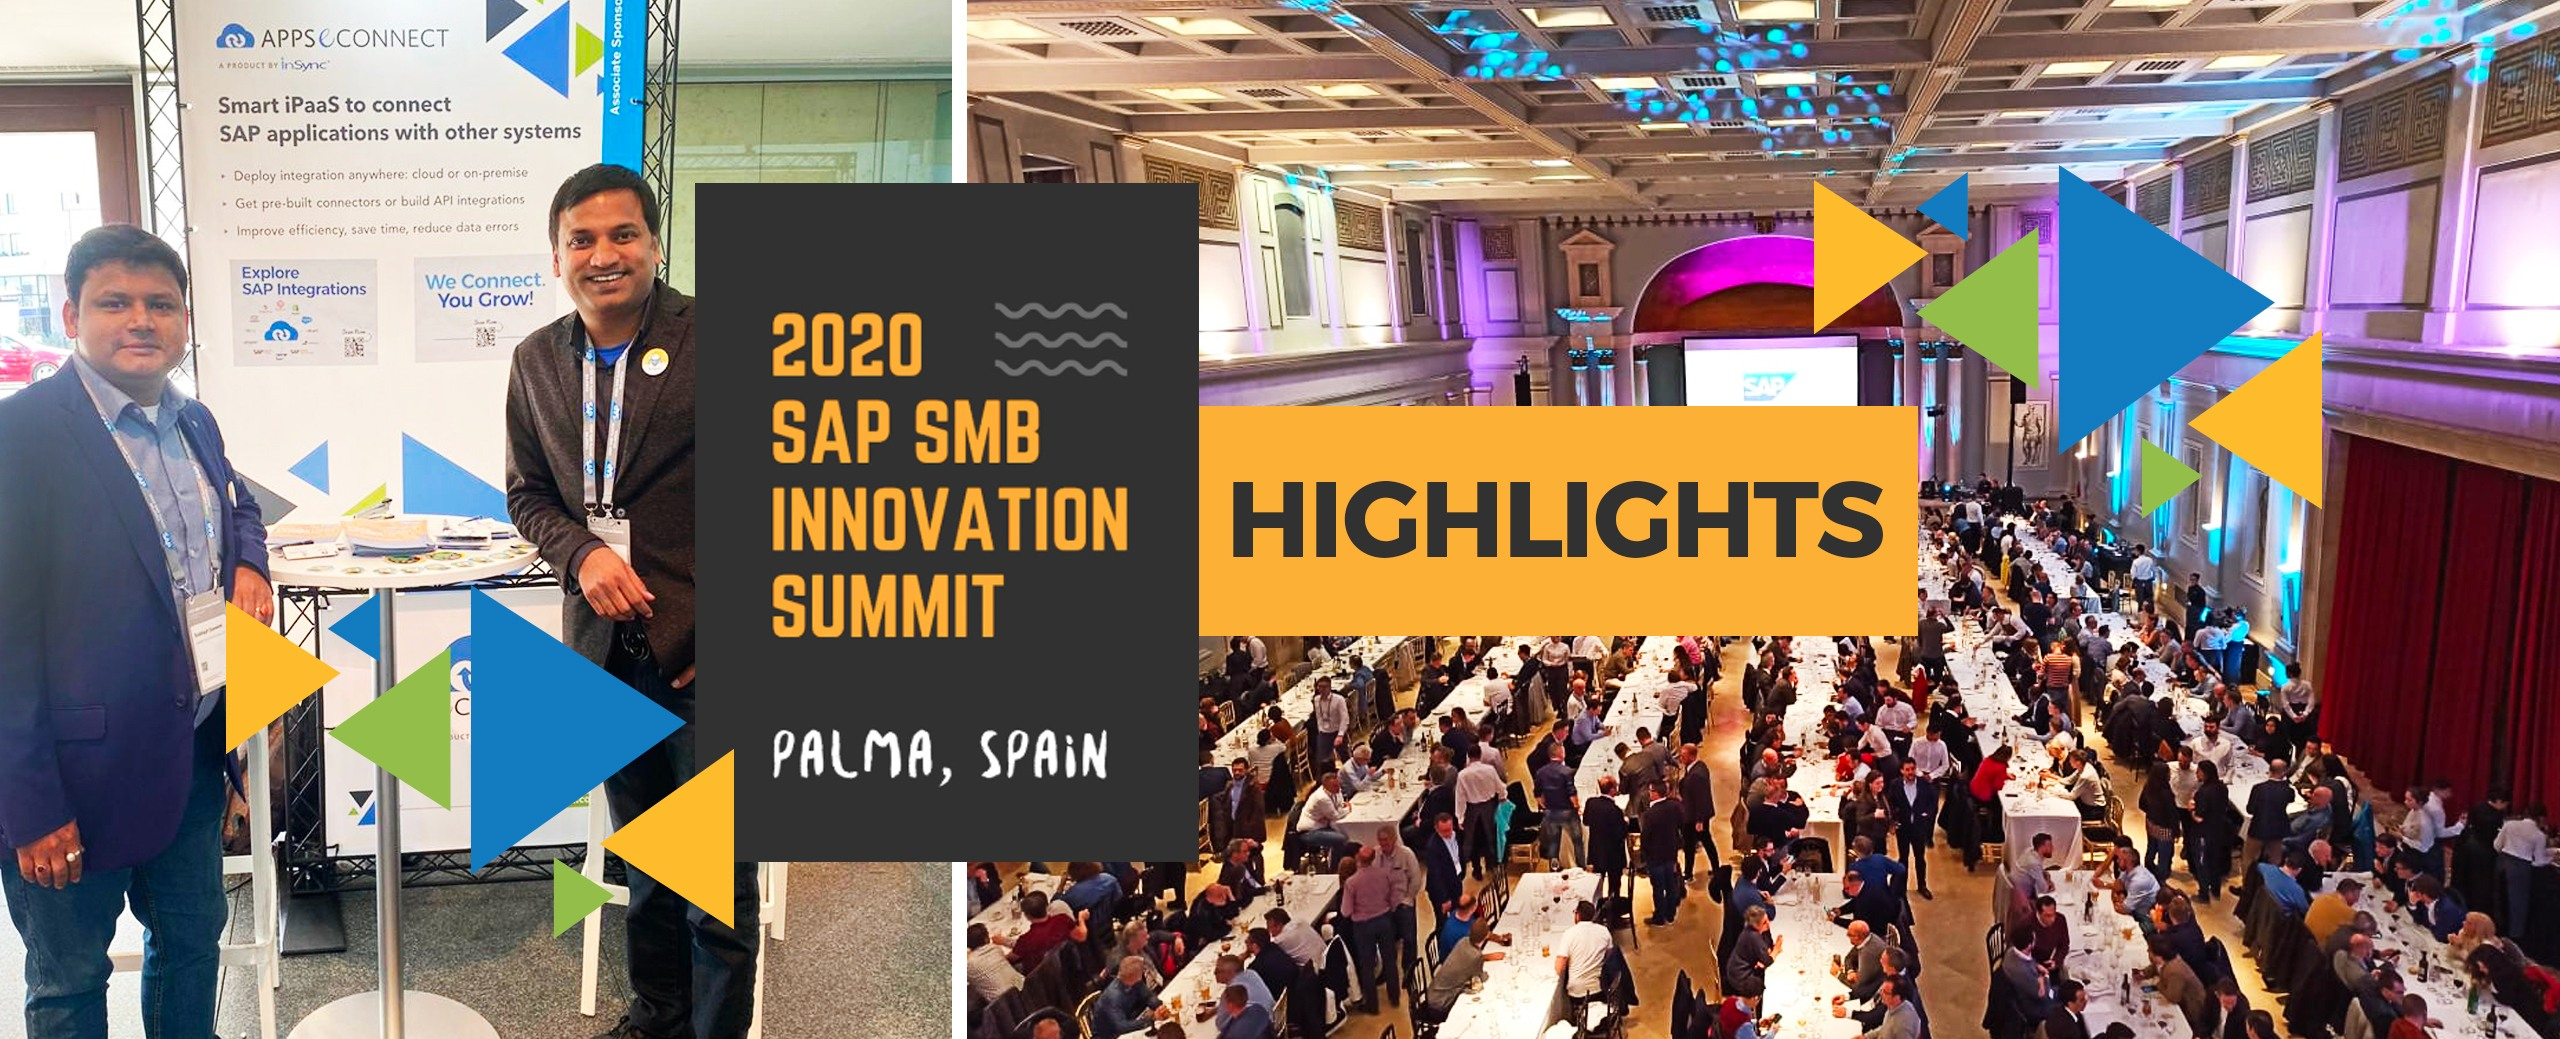 smbsummit2020-highlights